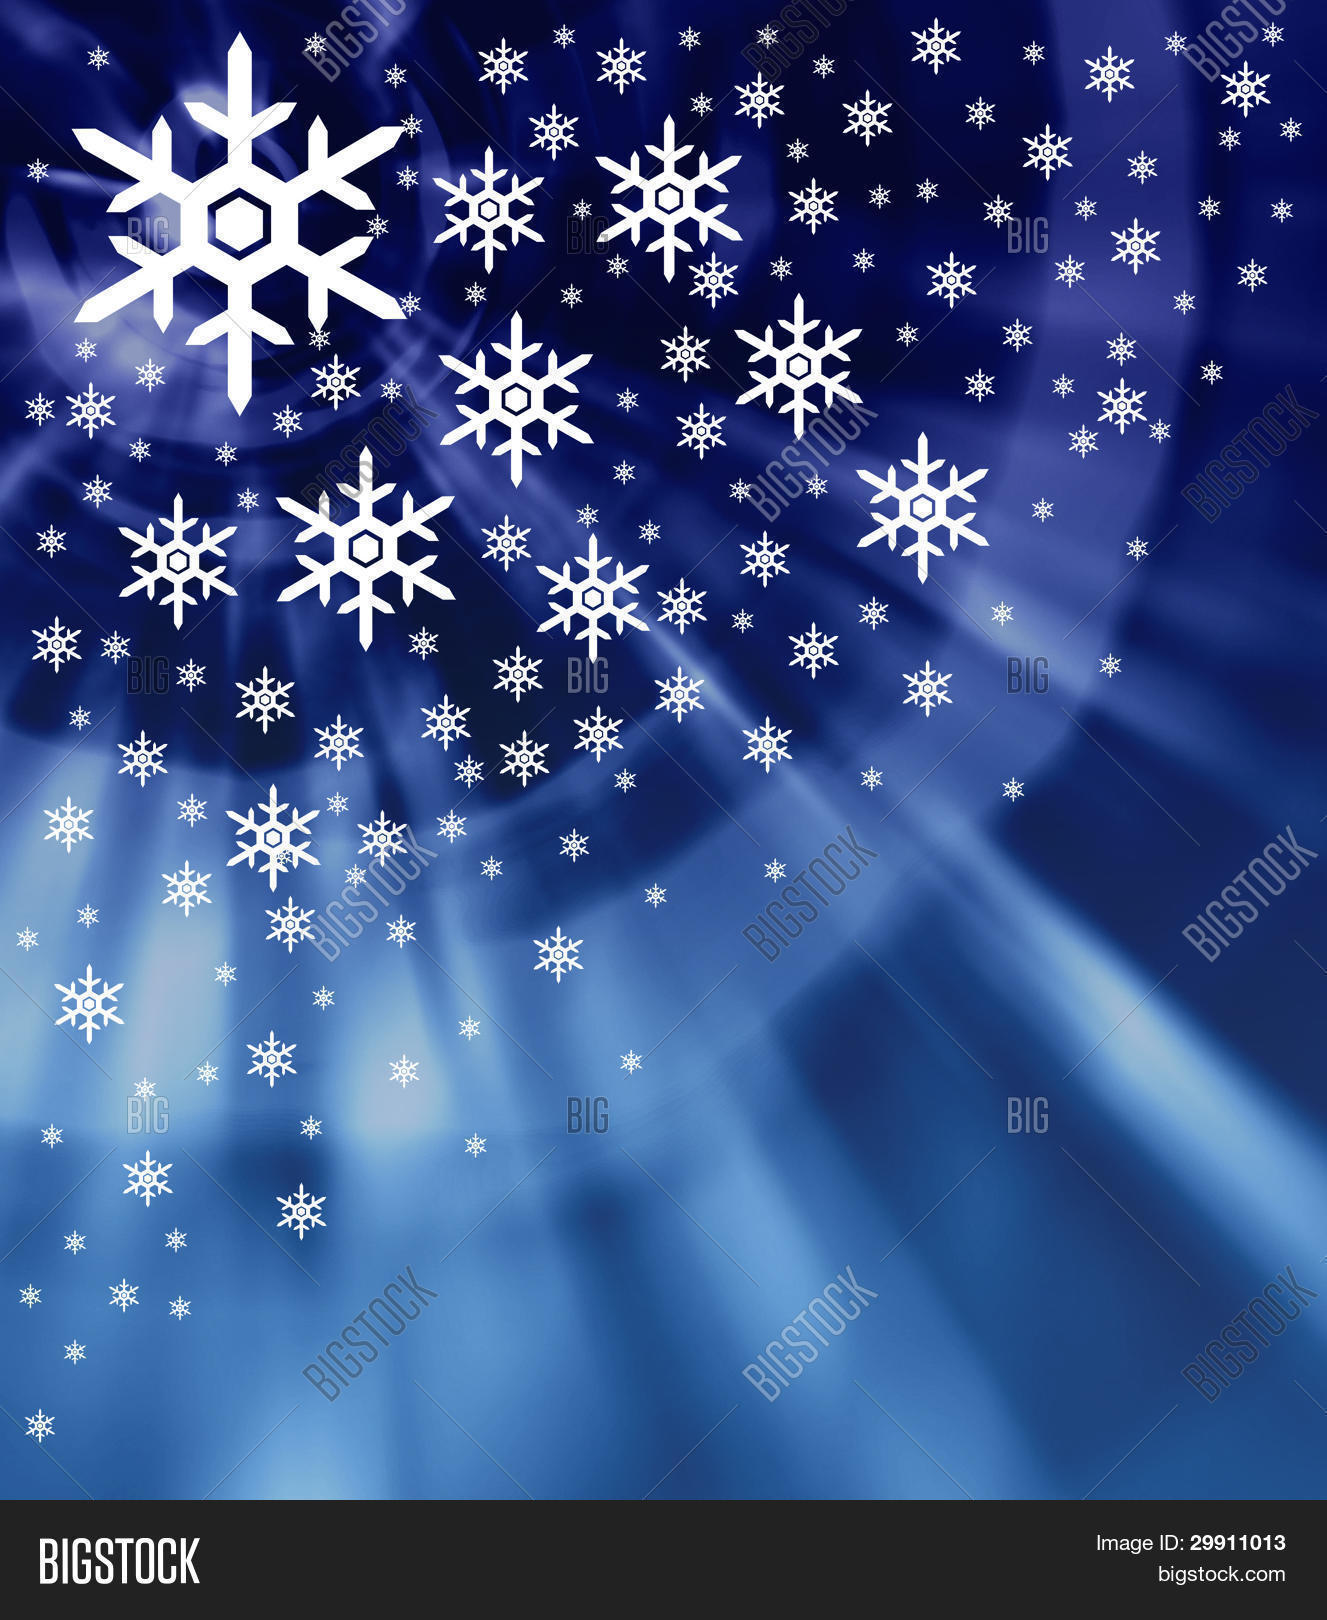 blizzard,breeze,card,christmas,christmasday,christmastime,cold,crystal,day,december,depth,design,evening,fall,flakes,freezing,geometrical,giving,greeting,holiday,illustration,january,joy,light,modern,nature,occasion,outdoor,outside,perspective,season,seasonal,shape,snow,snowflake,spirit,time,vacation,weather,wind,winter,xmas